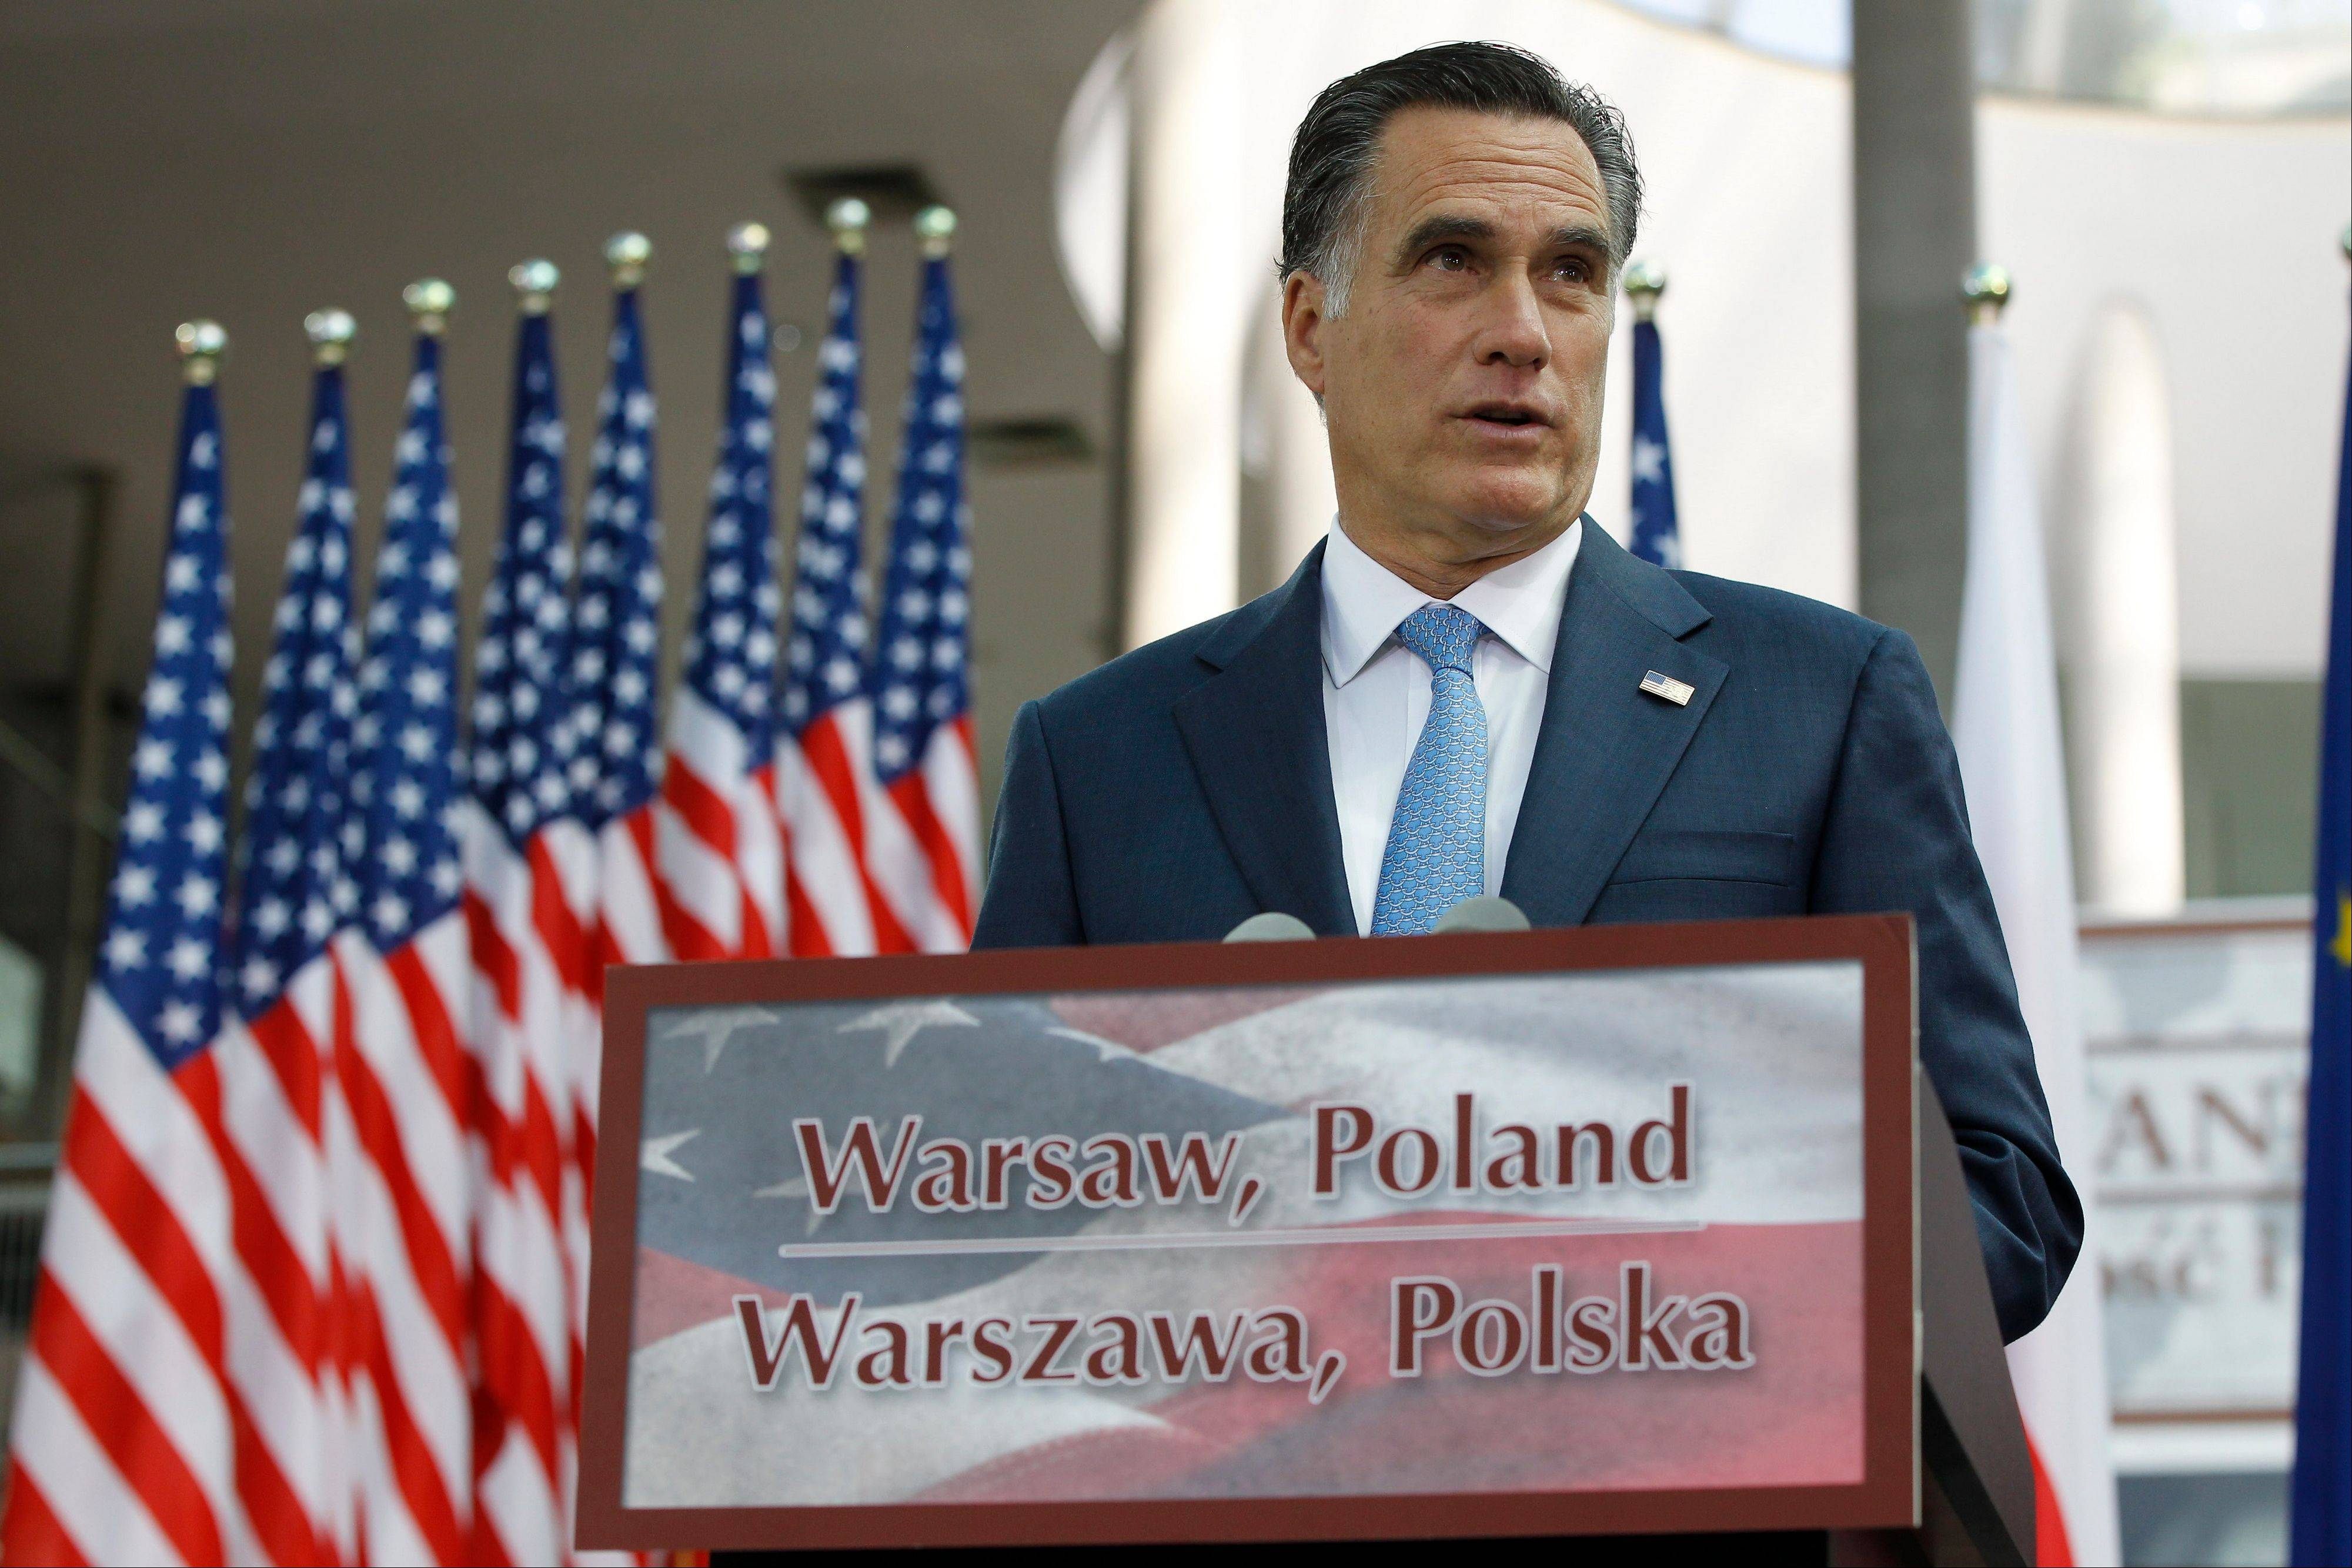 Republican presidential candidate and former Massachusetts Gov. Mitt Romney speaks at the University of Warsaw Library in Warsaw, Poland, Tuesday, July 31, 2012.